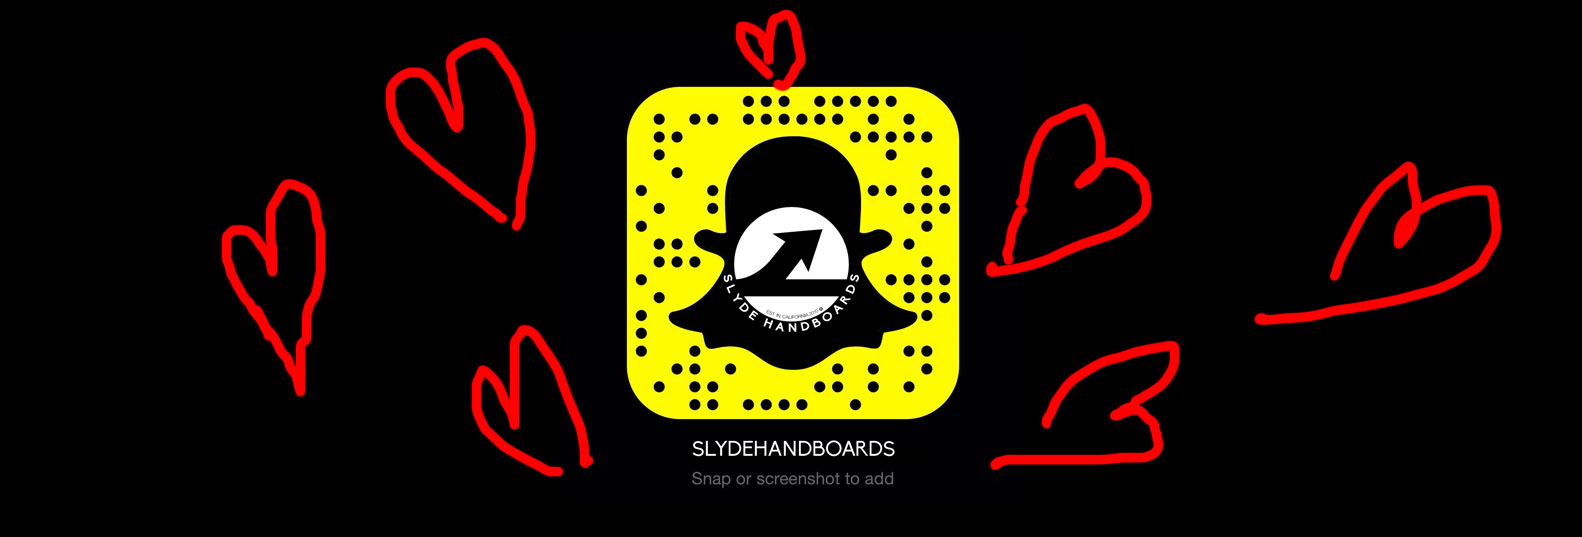 Slyde handboards on snap chat